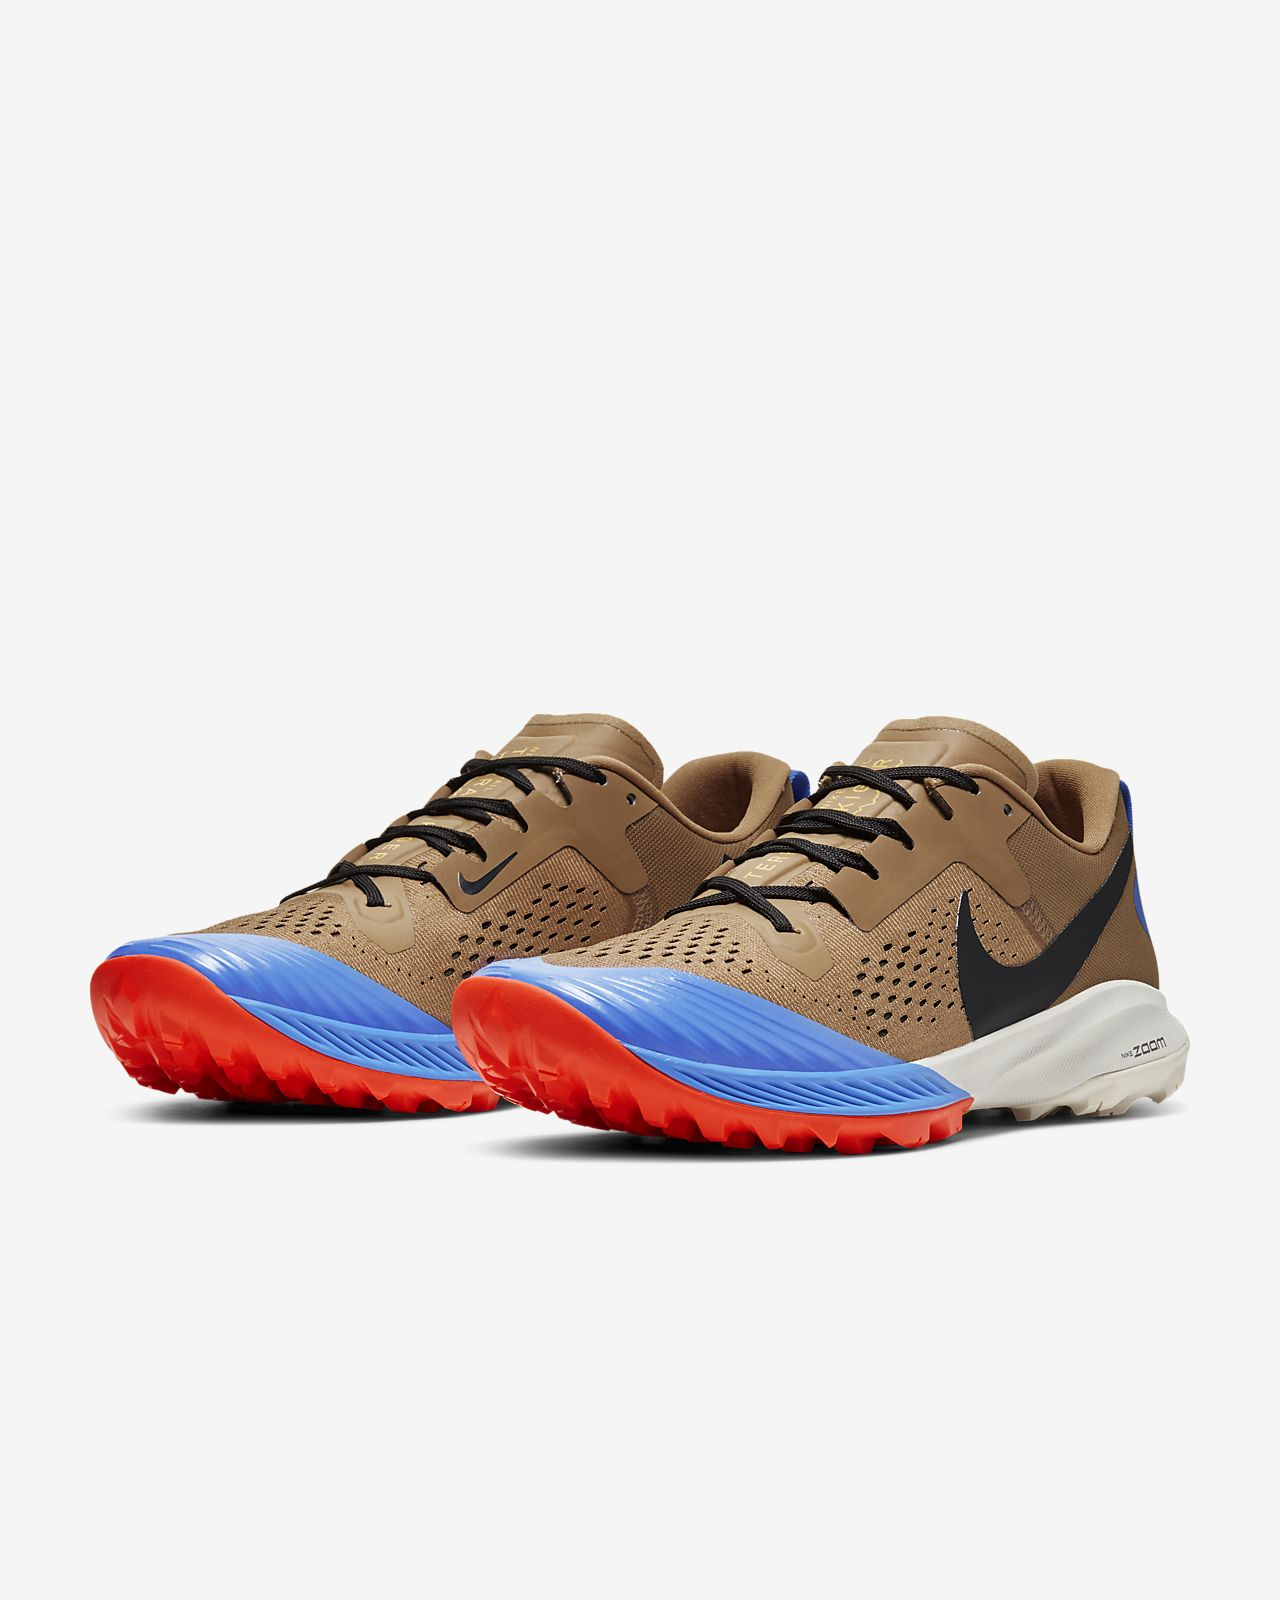 Nike Zoom Terra Kiger 5 Men's Trail Shoes Beechtree